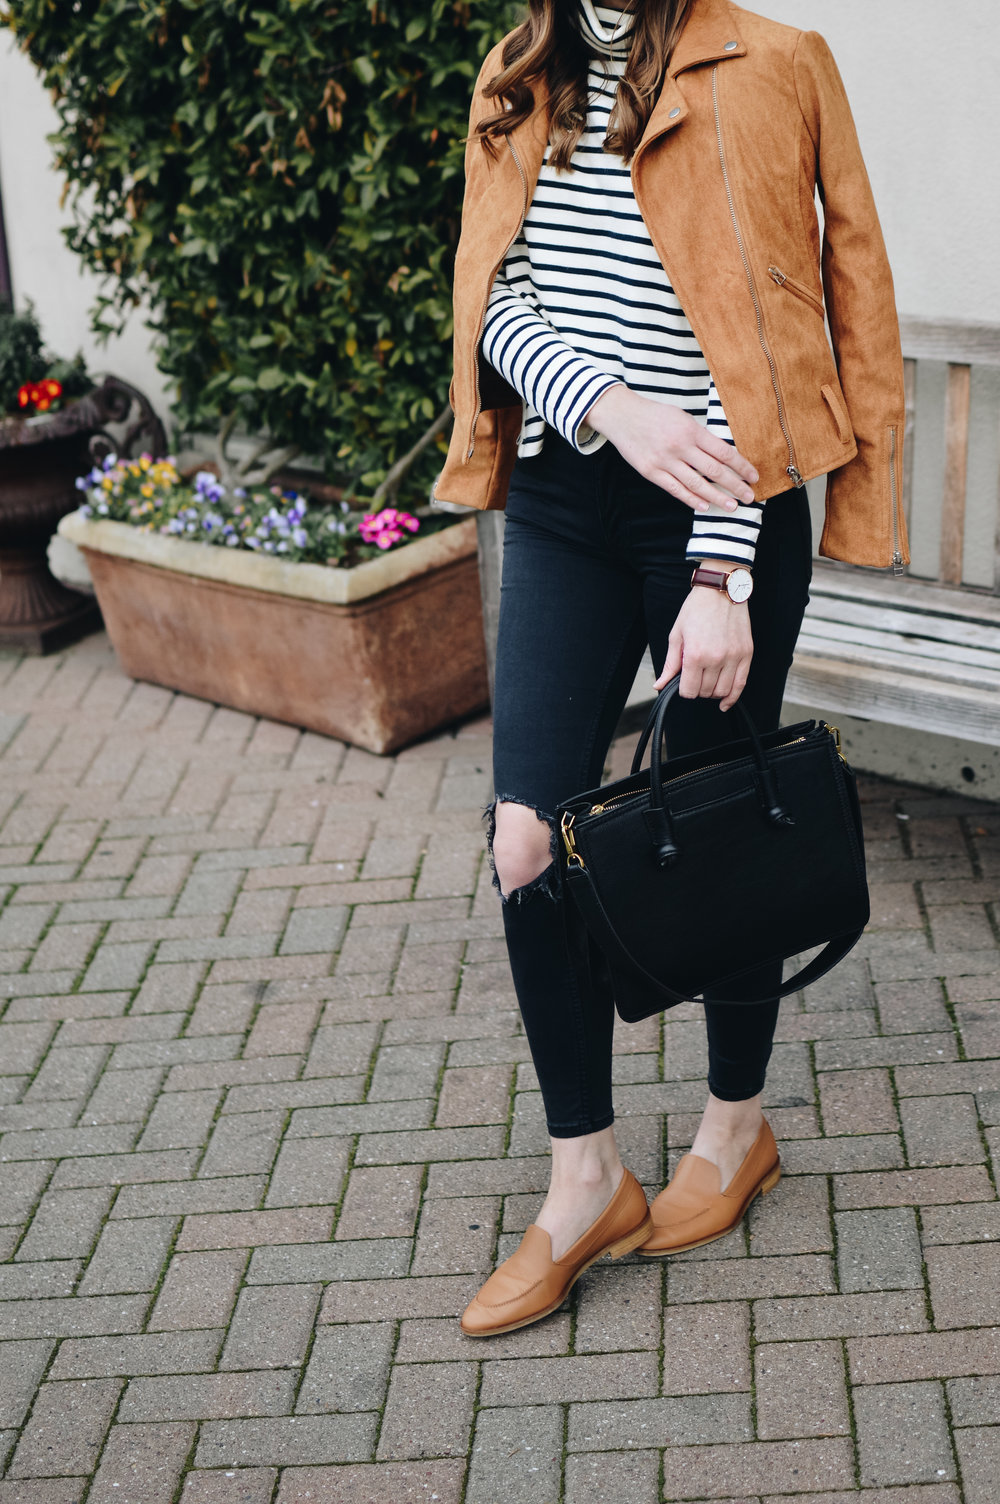 classic striped style